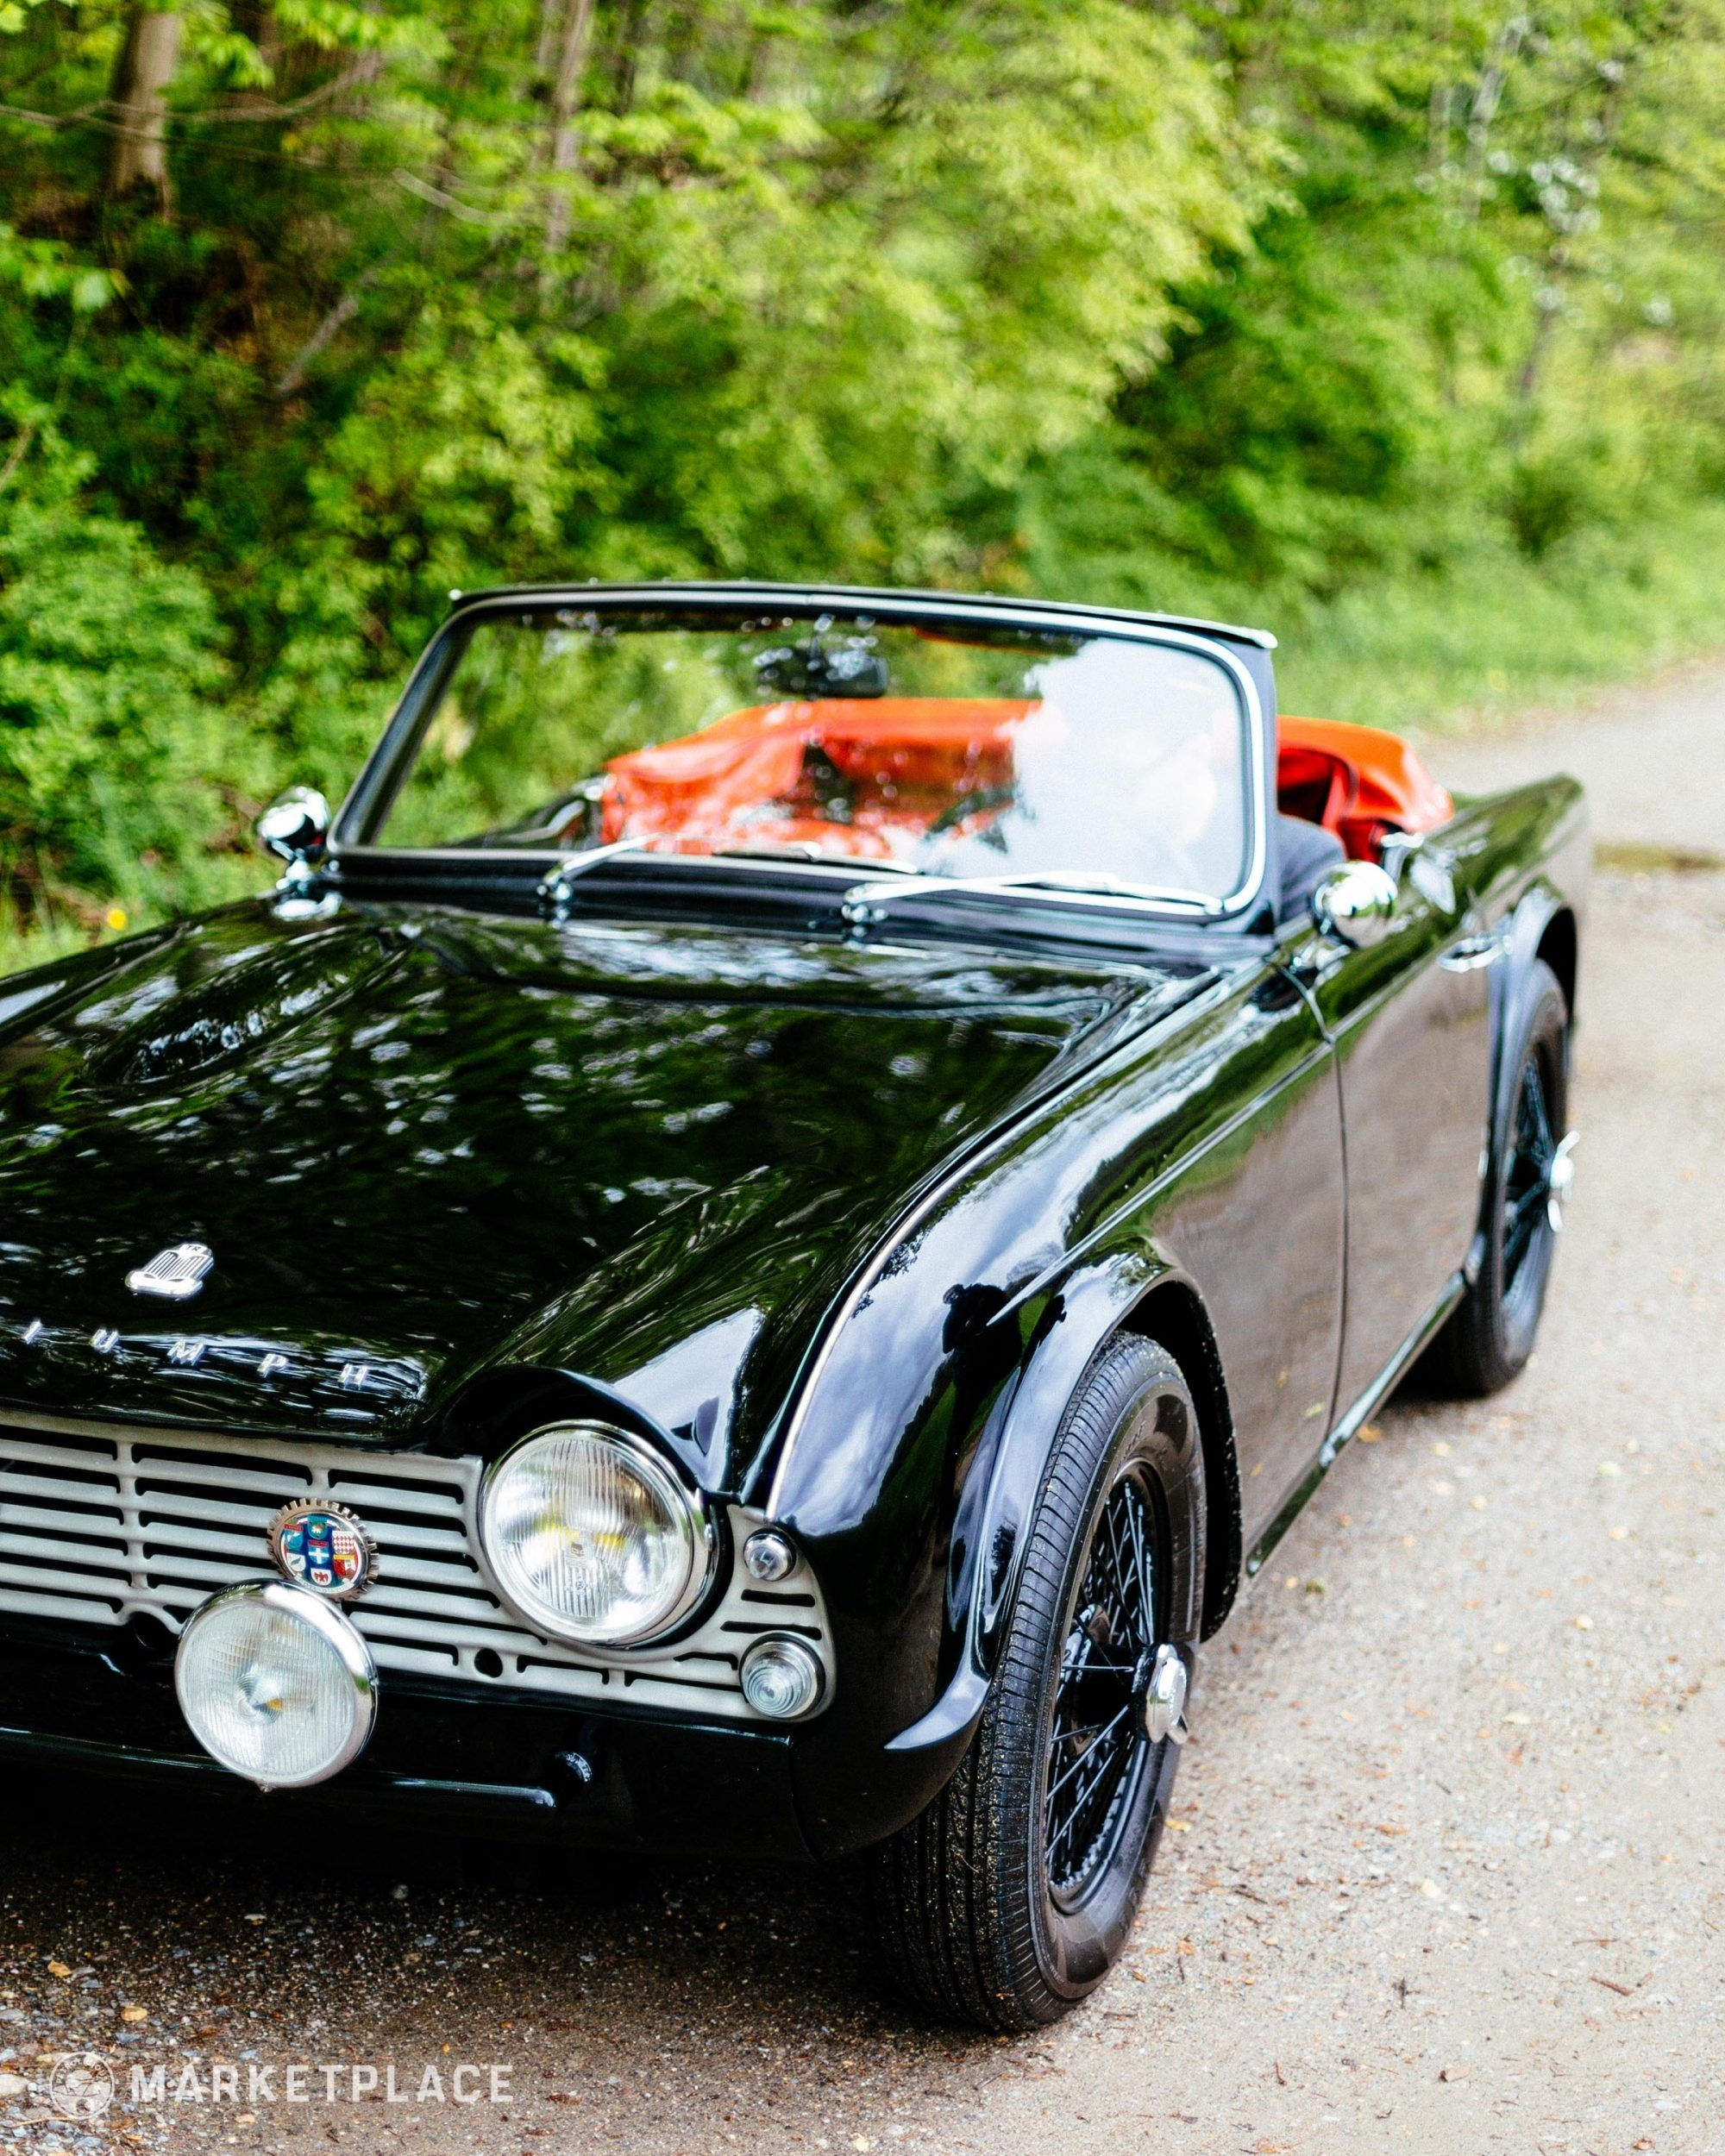 1961 Triumph TR4 w/ Engine Audio Clips